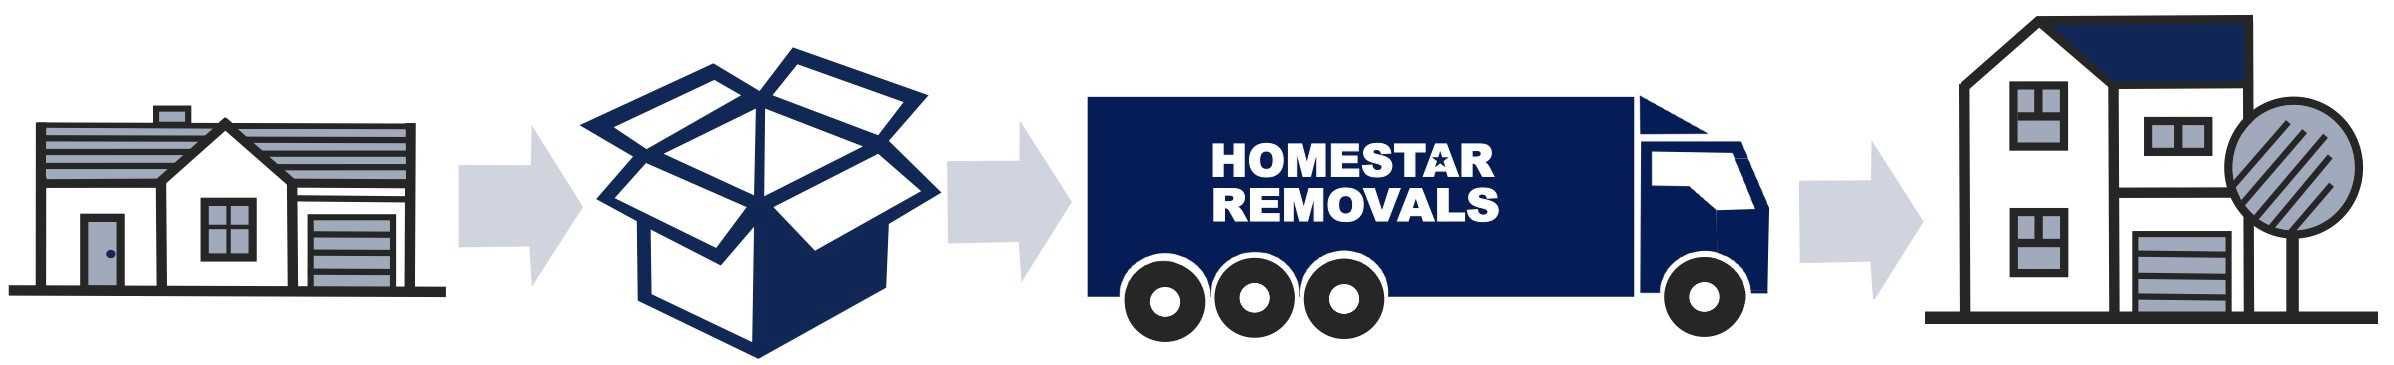 Homestar Removals of Uxbridge